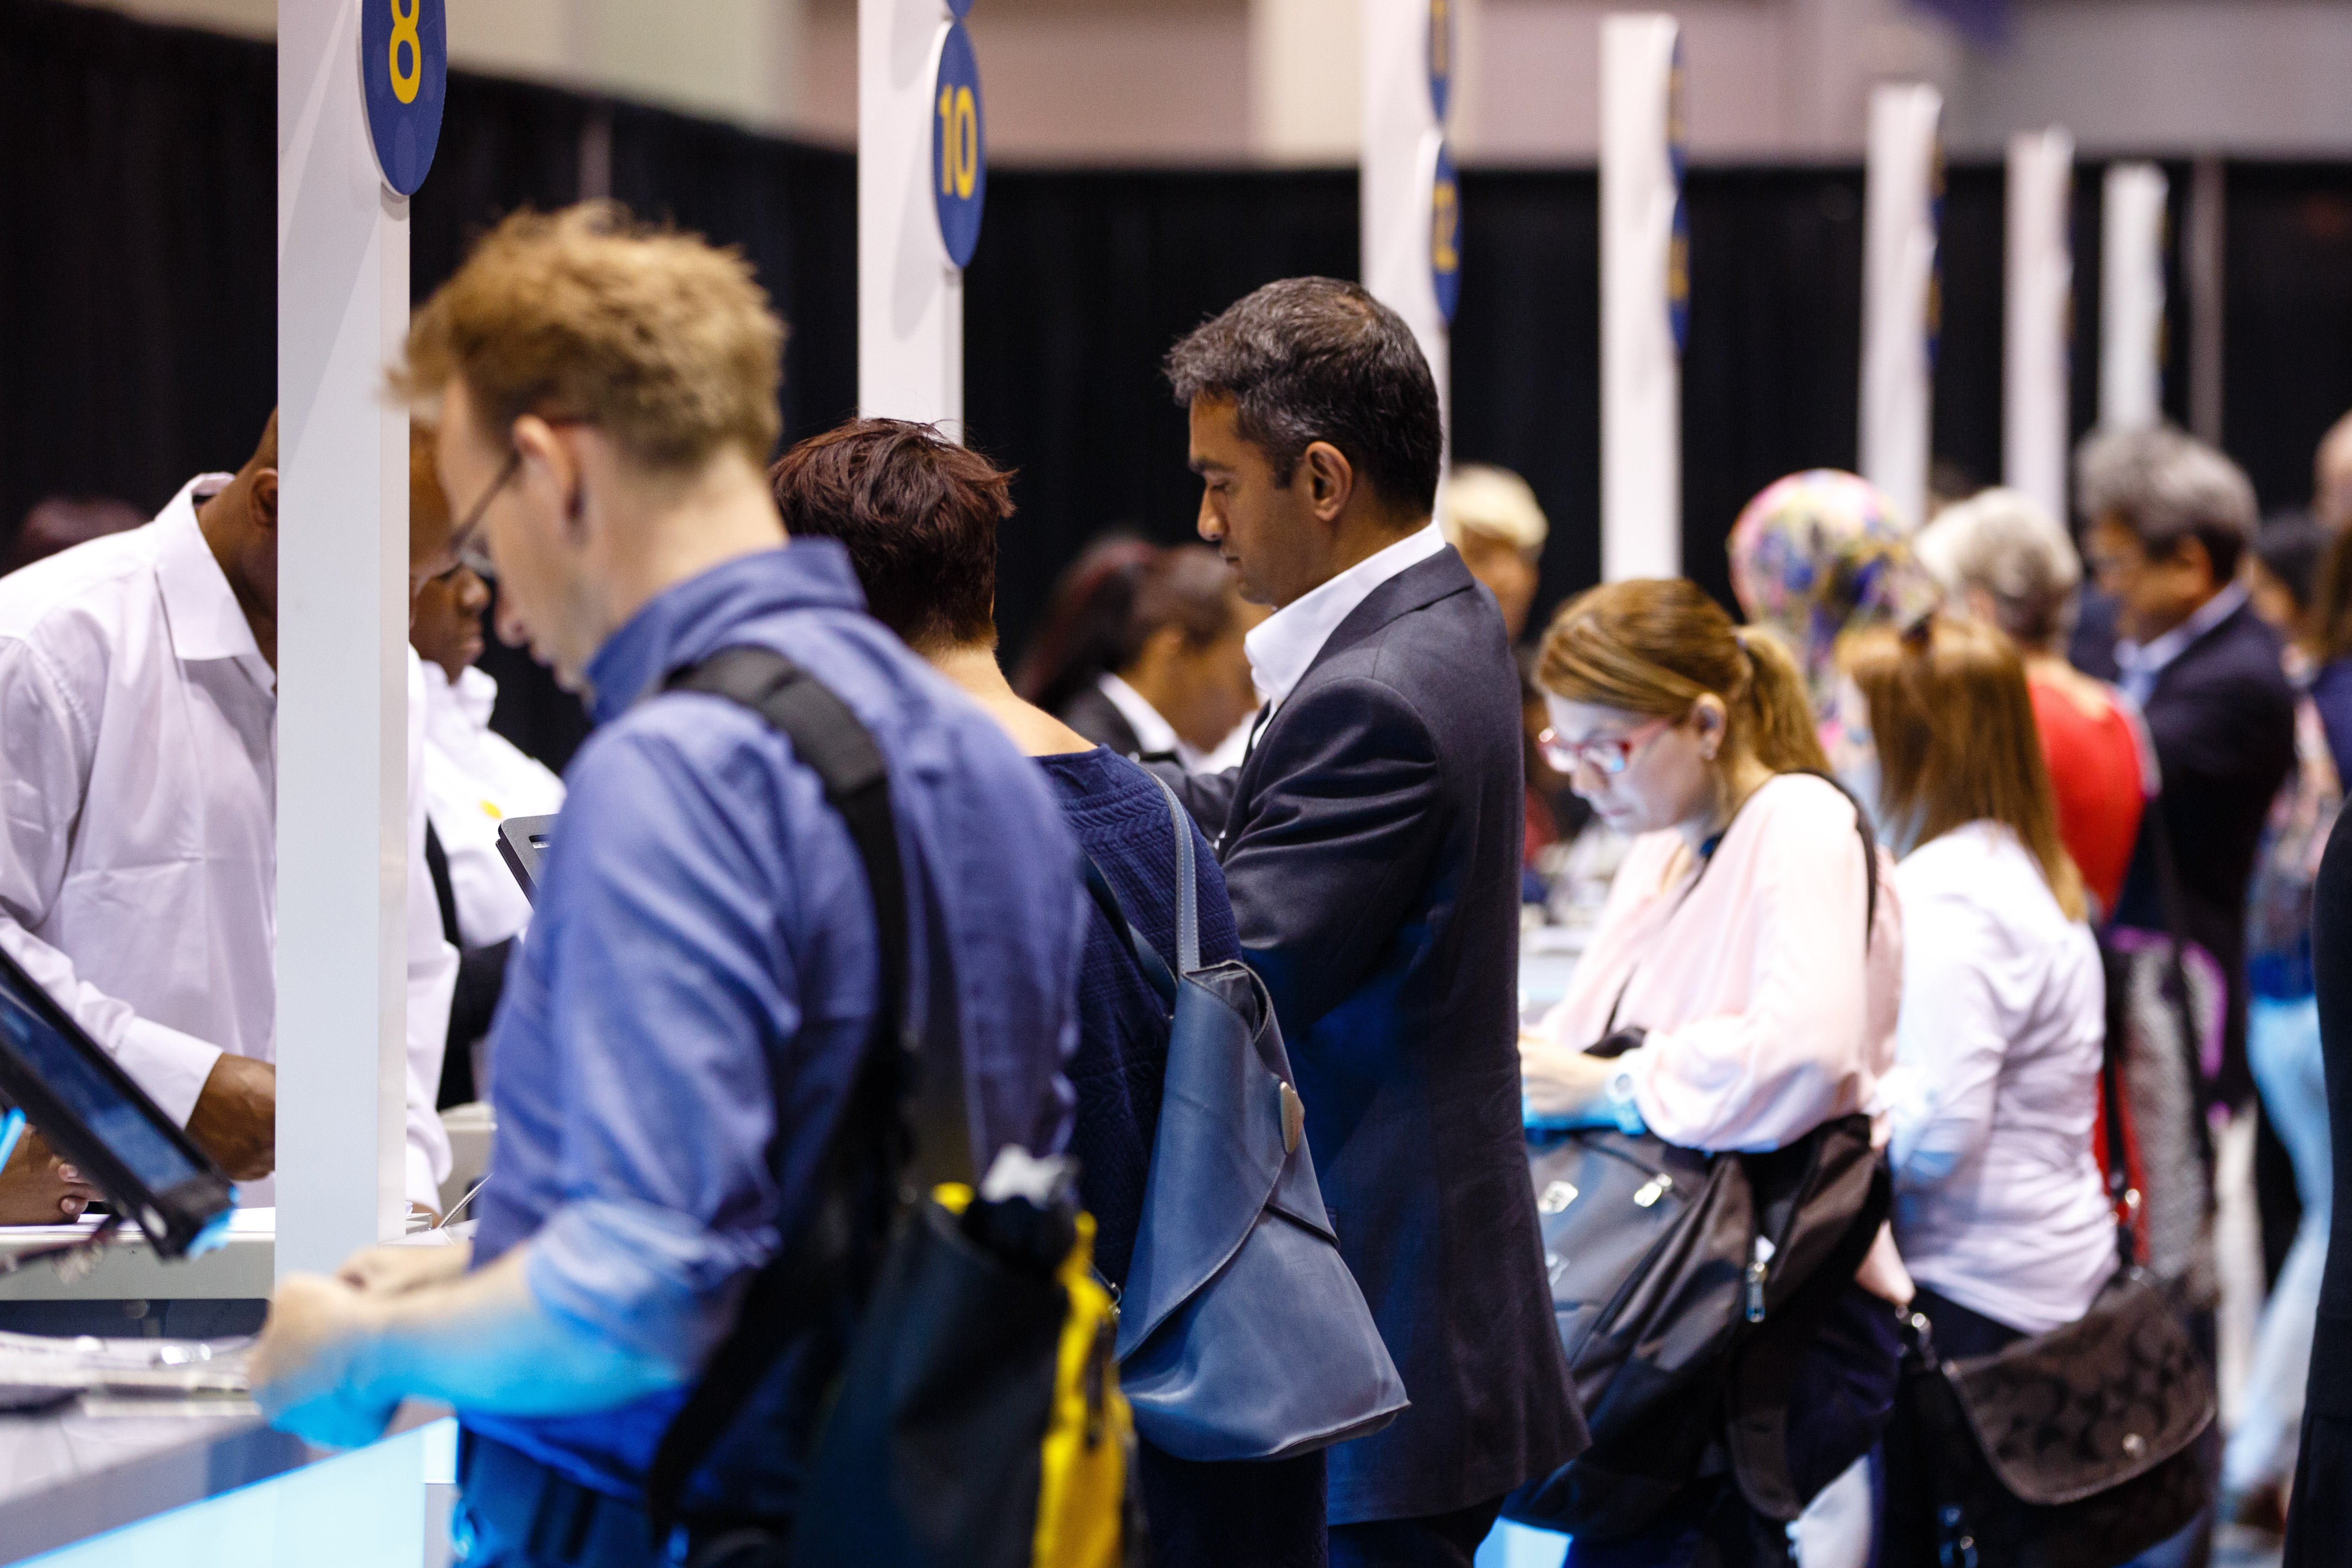 Attendees during the day at the American Society of Clinical Oncology (ASCO) Courtesy © ASCO/Scott Morgan